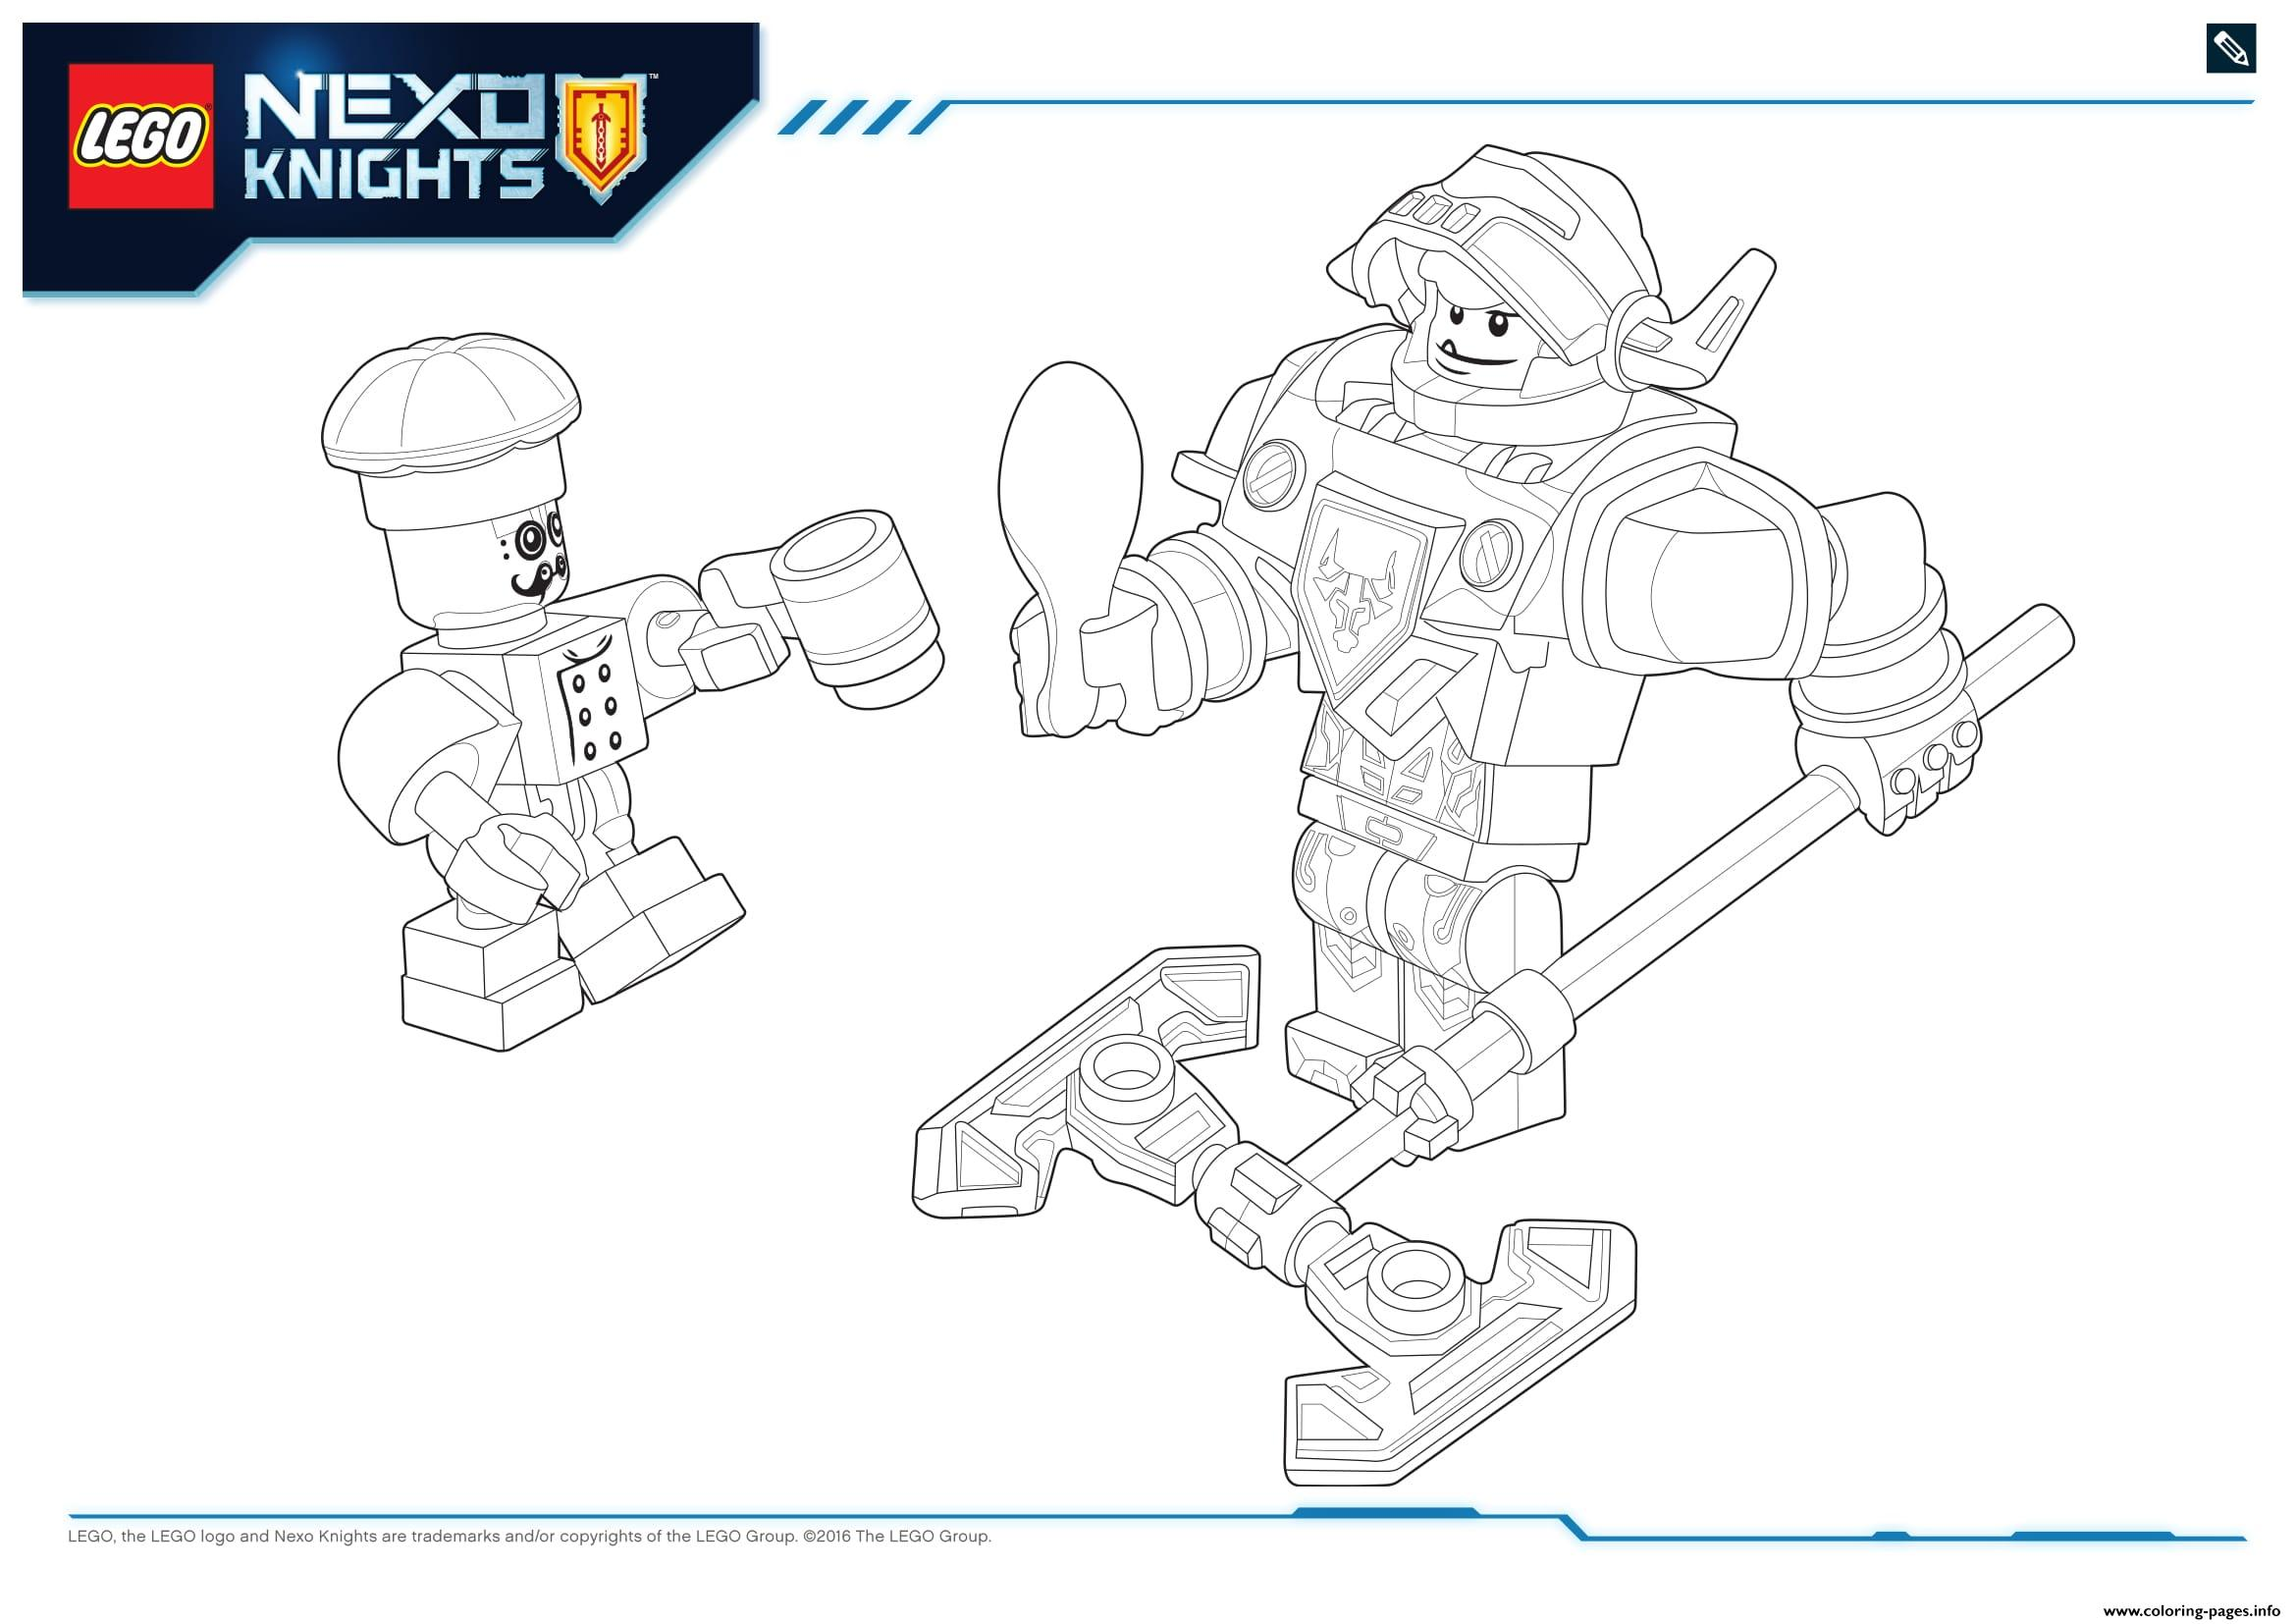 lego nexo knights products 8 coloring pages printable